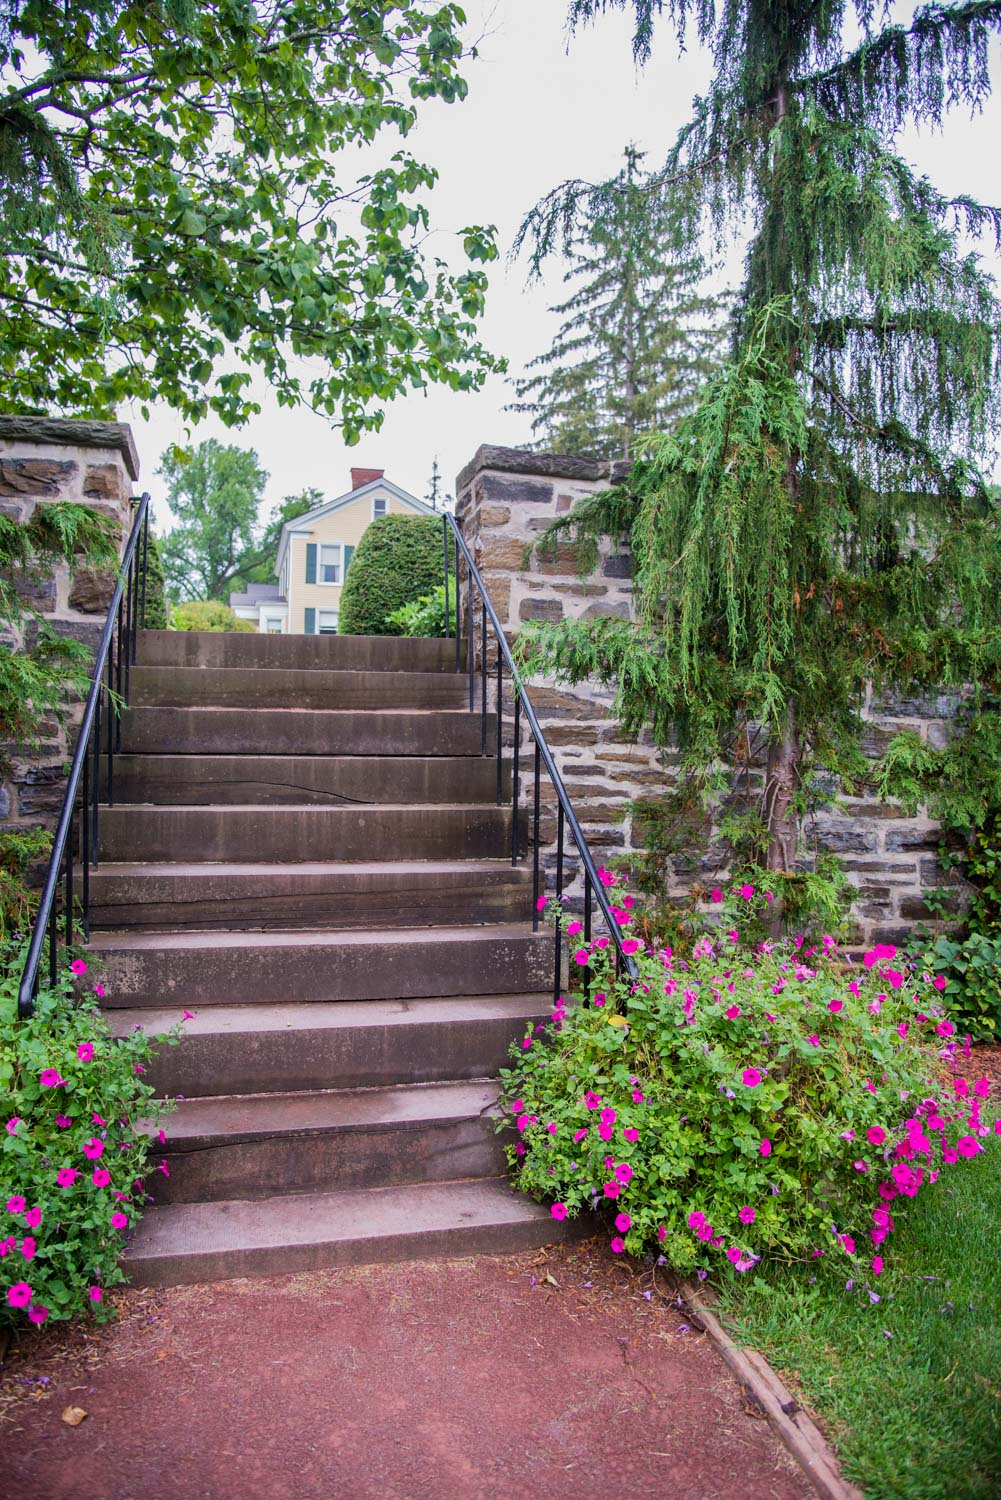 Stone steps with flowers for senior photos